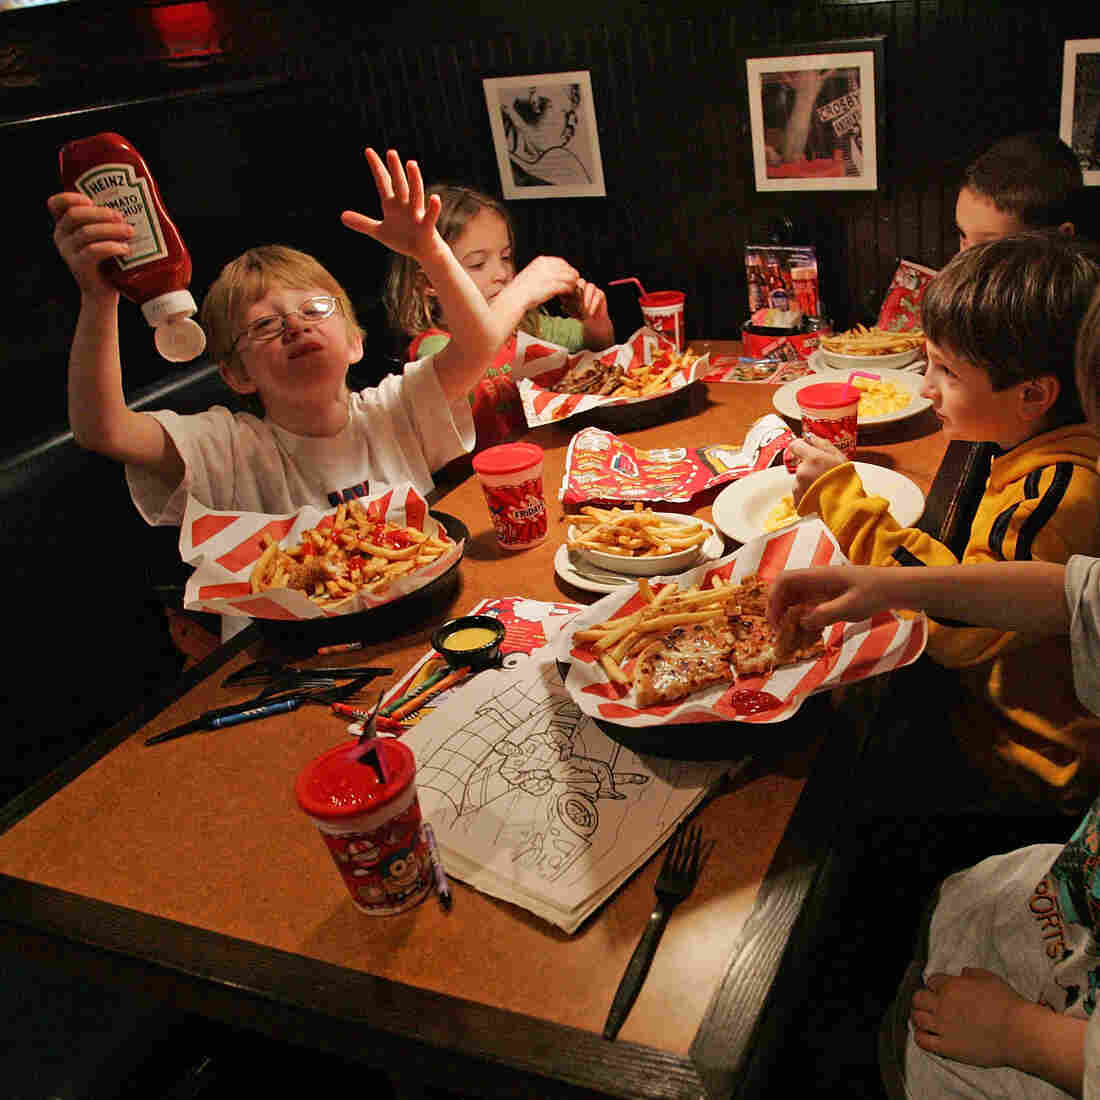 Restaurant Meals Mean More Calories And Soda For Kids And Teens